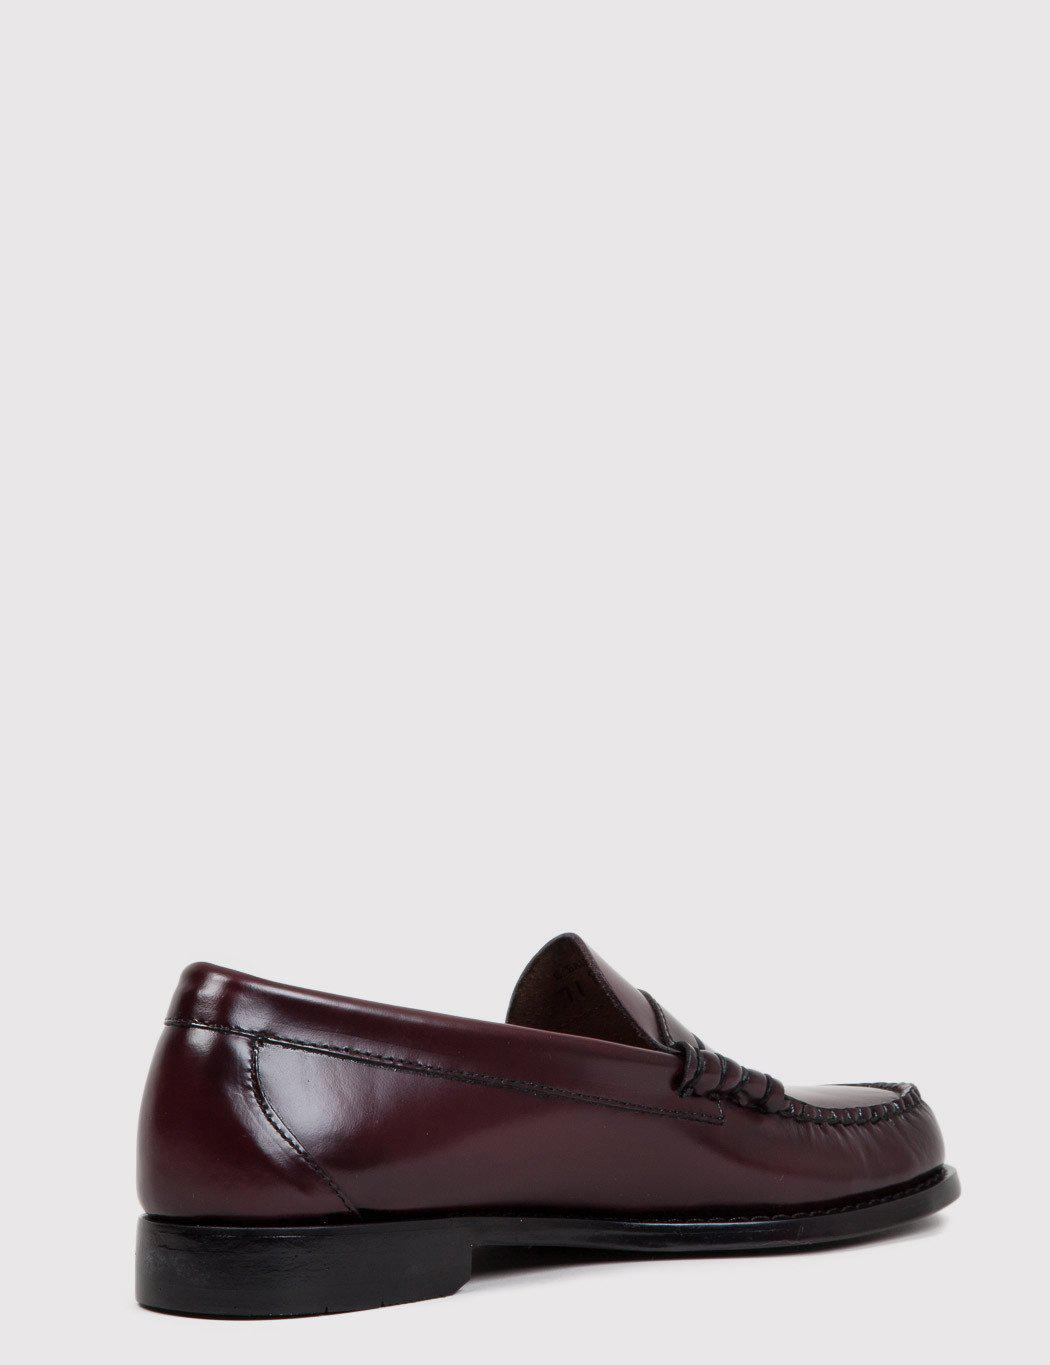 c40f7adbd55 Lyst - G.H.BASS Bass Weejun Larson Penny Loafers in Brown for Men